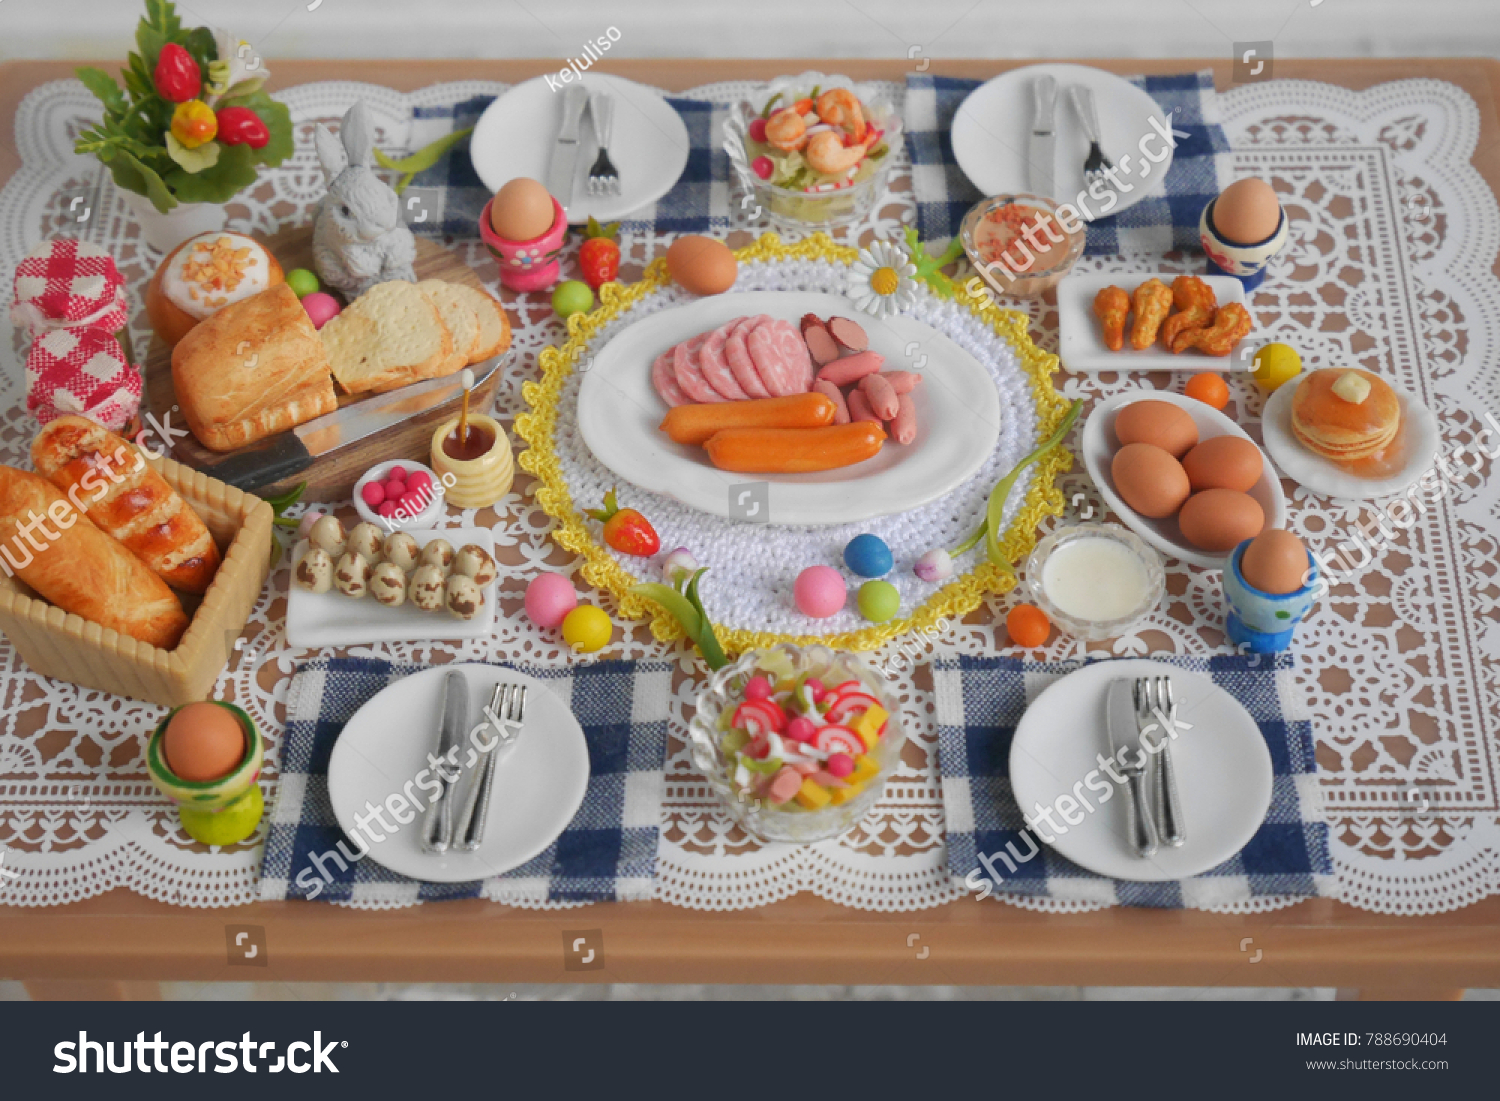 Breakfast Brunch Table Setting Easter Meal Stock Photo (Royalty Free) 788690404 - Shutterstock : brunch table setting - Pezcame.Com